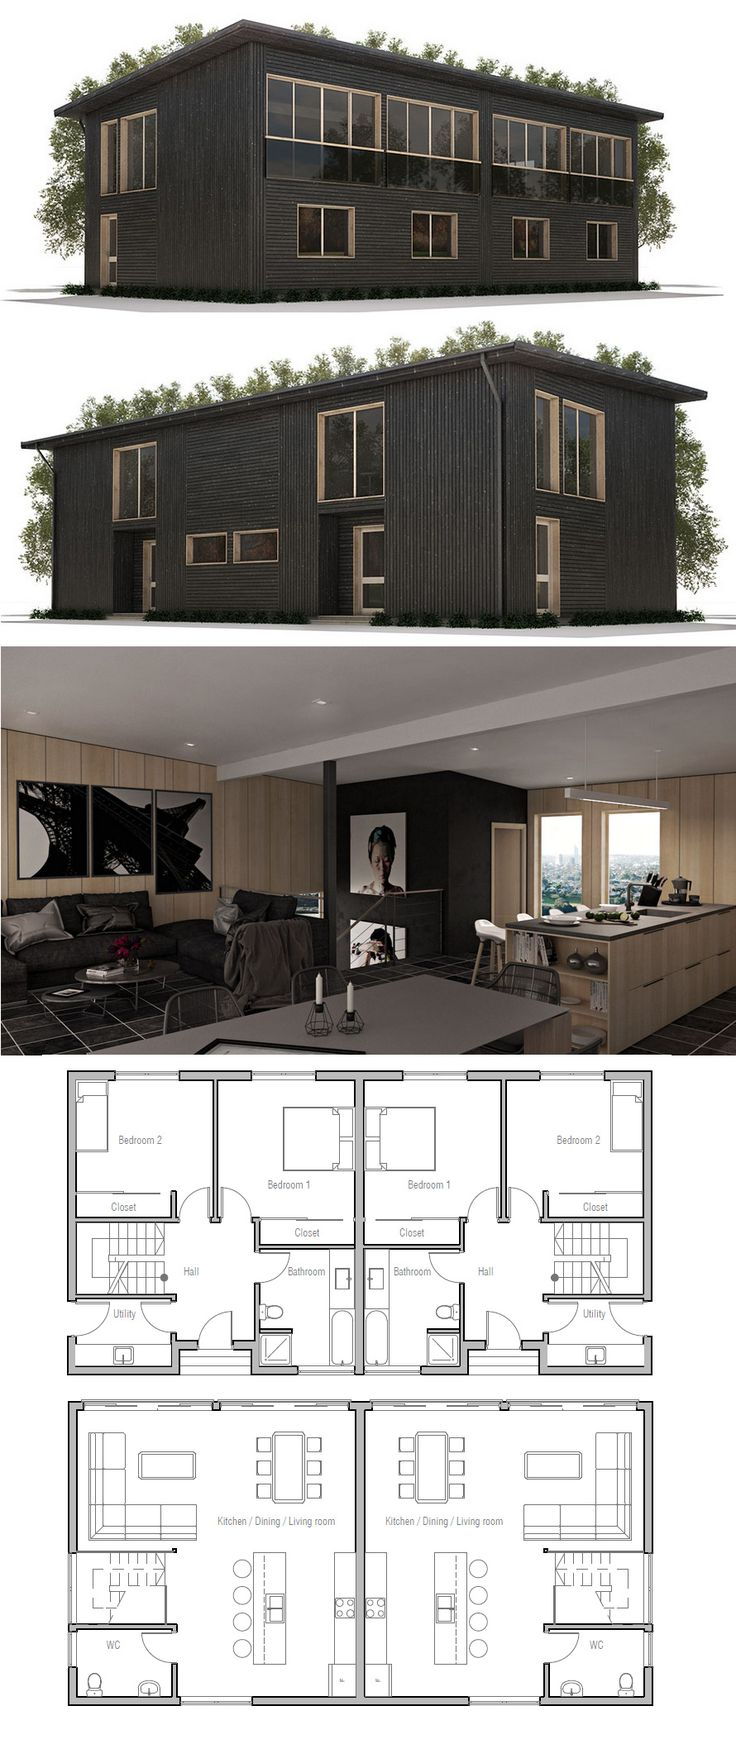 Plan de maison duplex maison duplex pinterest house for Plan maison duplex